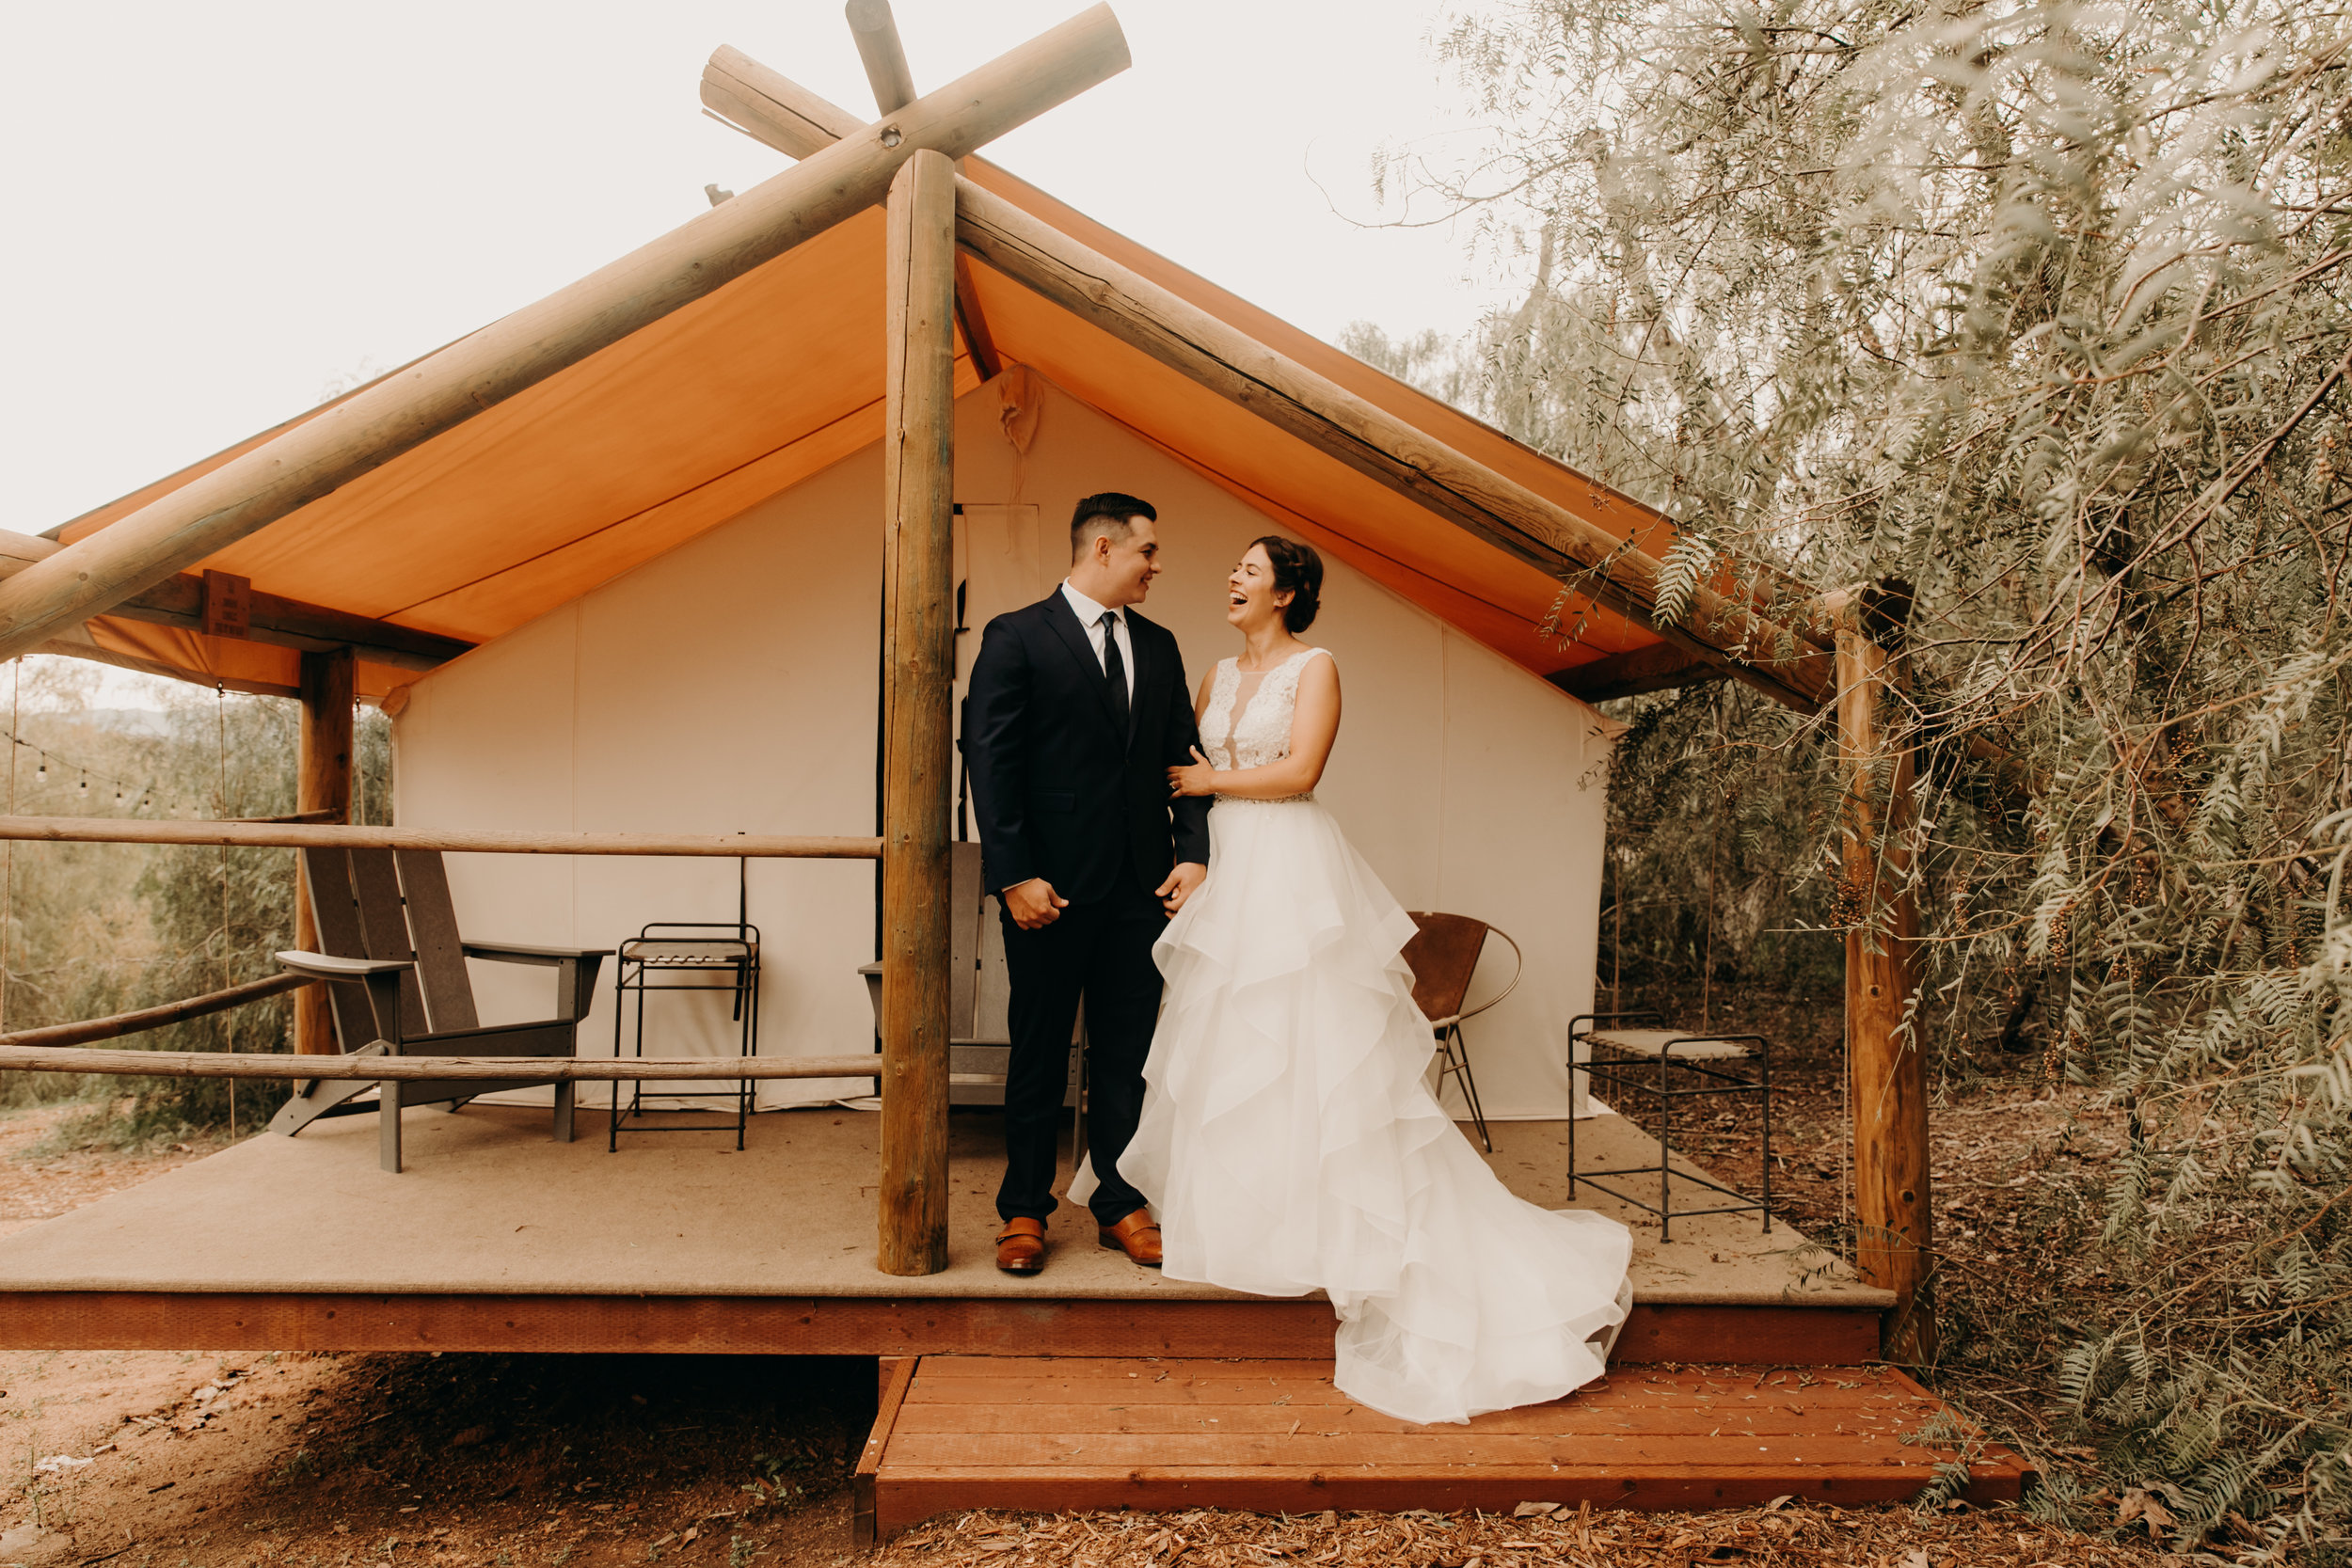 San Diego wedding at Etherial Open Air resort   Wedding